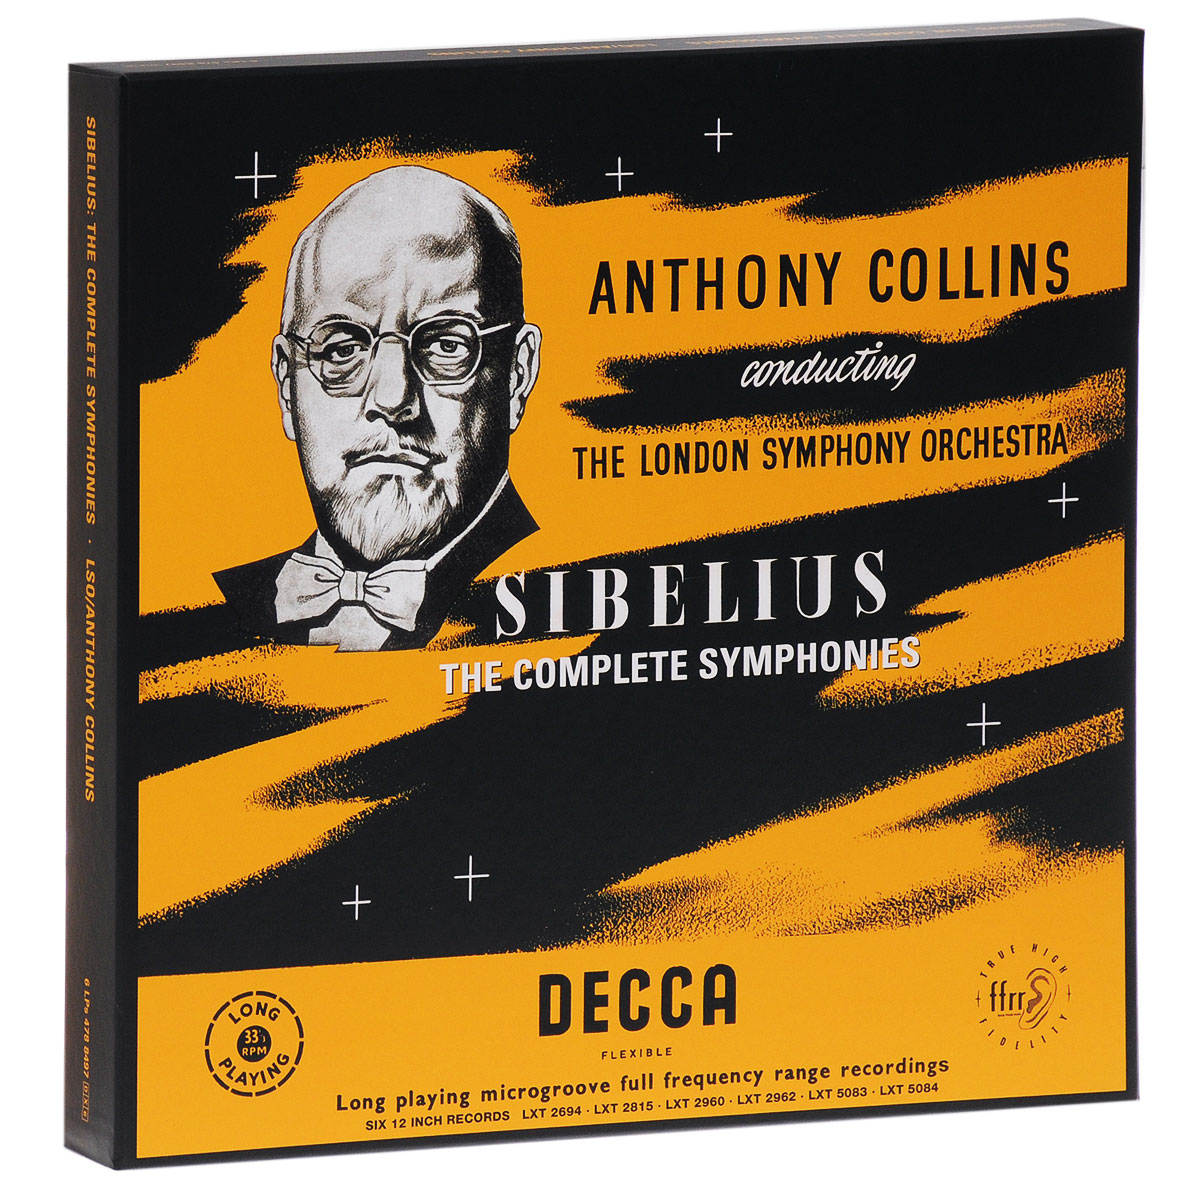 Энтони Коллинз,The London Symphony Orchestra Anthony Collins. Sibelius. The Complete Symphonies (6 LP) procol harum procol harum live in concert with the edmonton symphony 2 lp colour